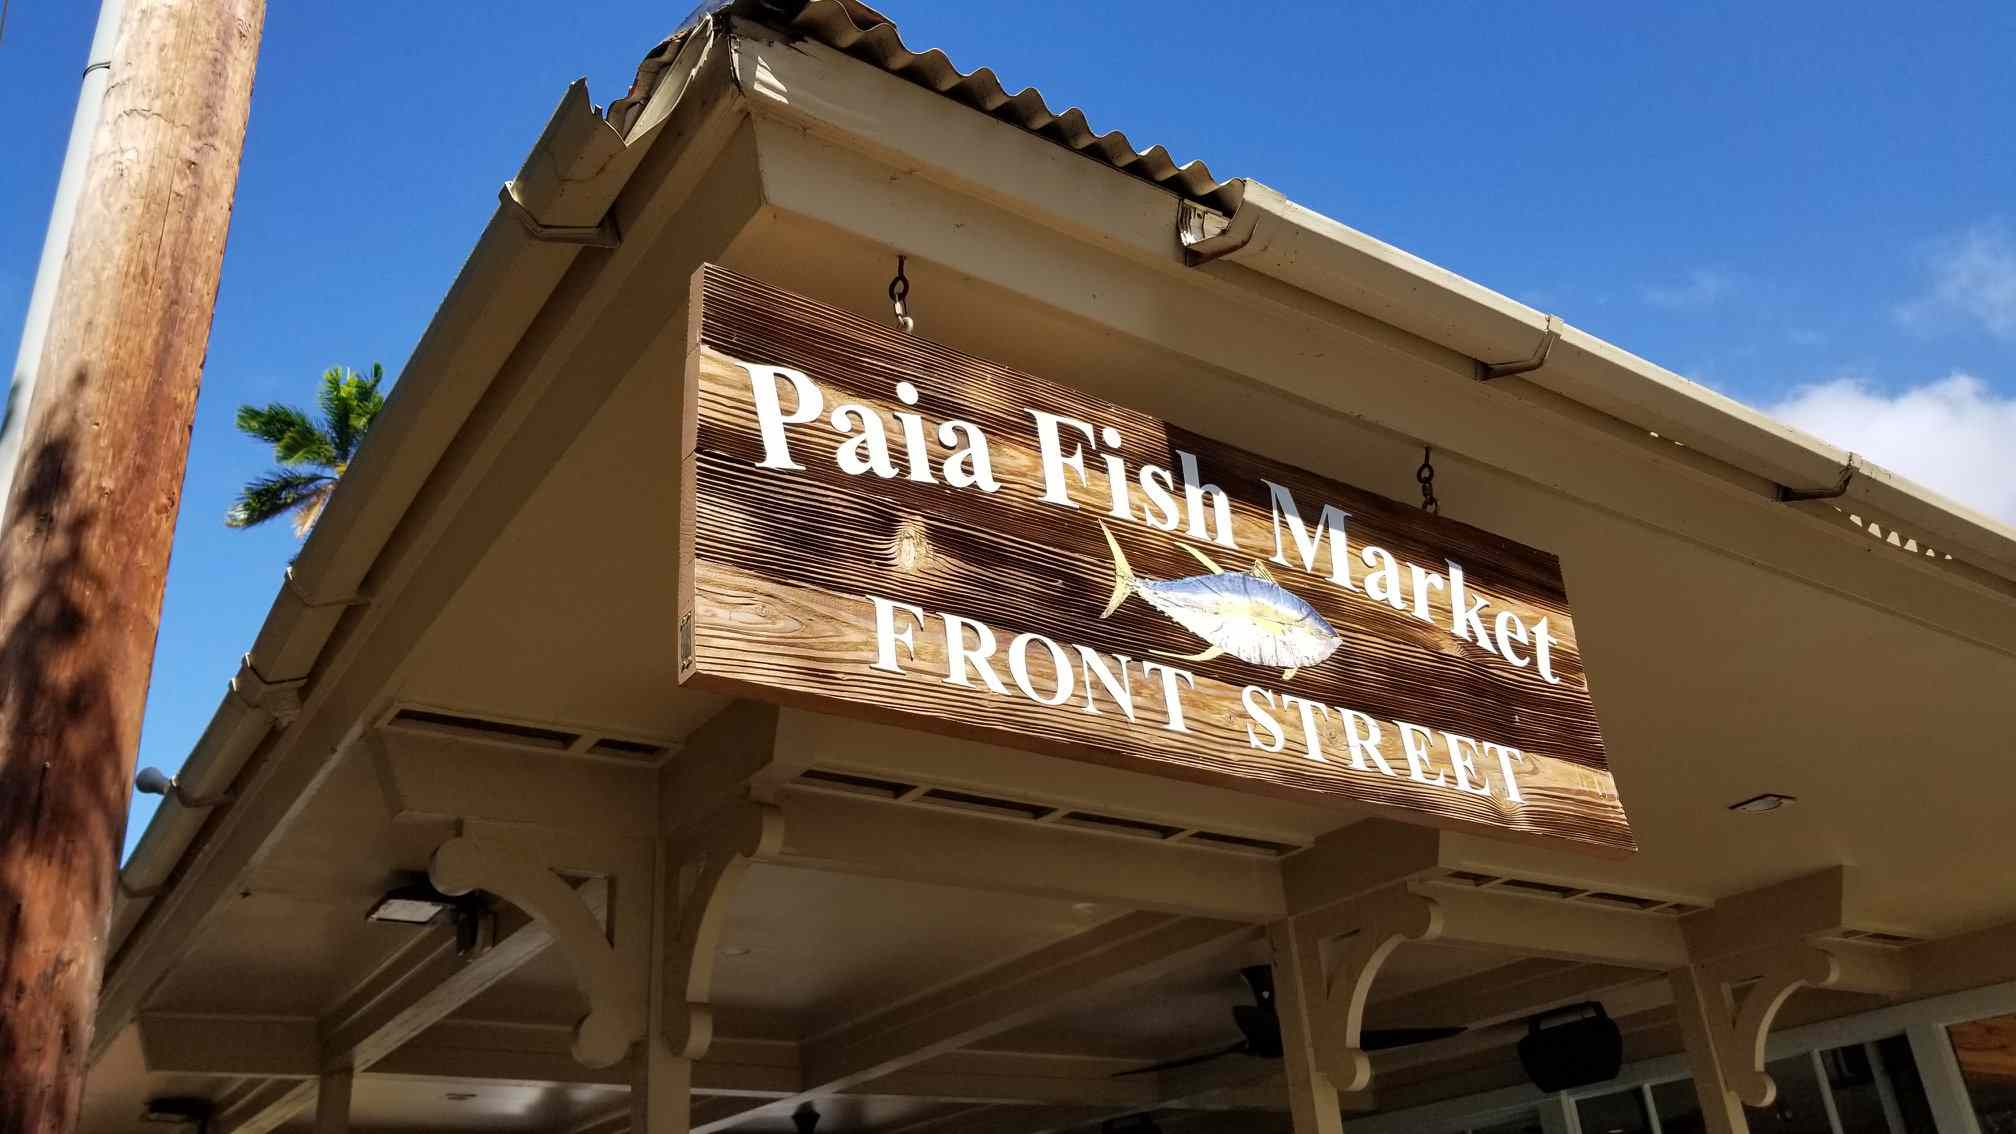 Sign for Paia Fish Market